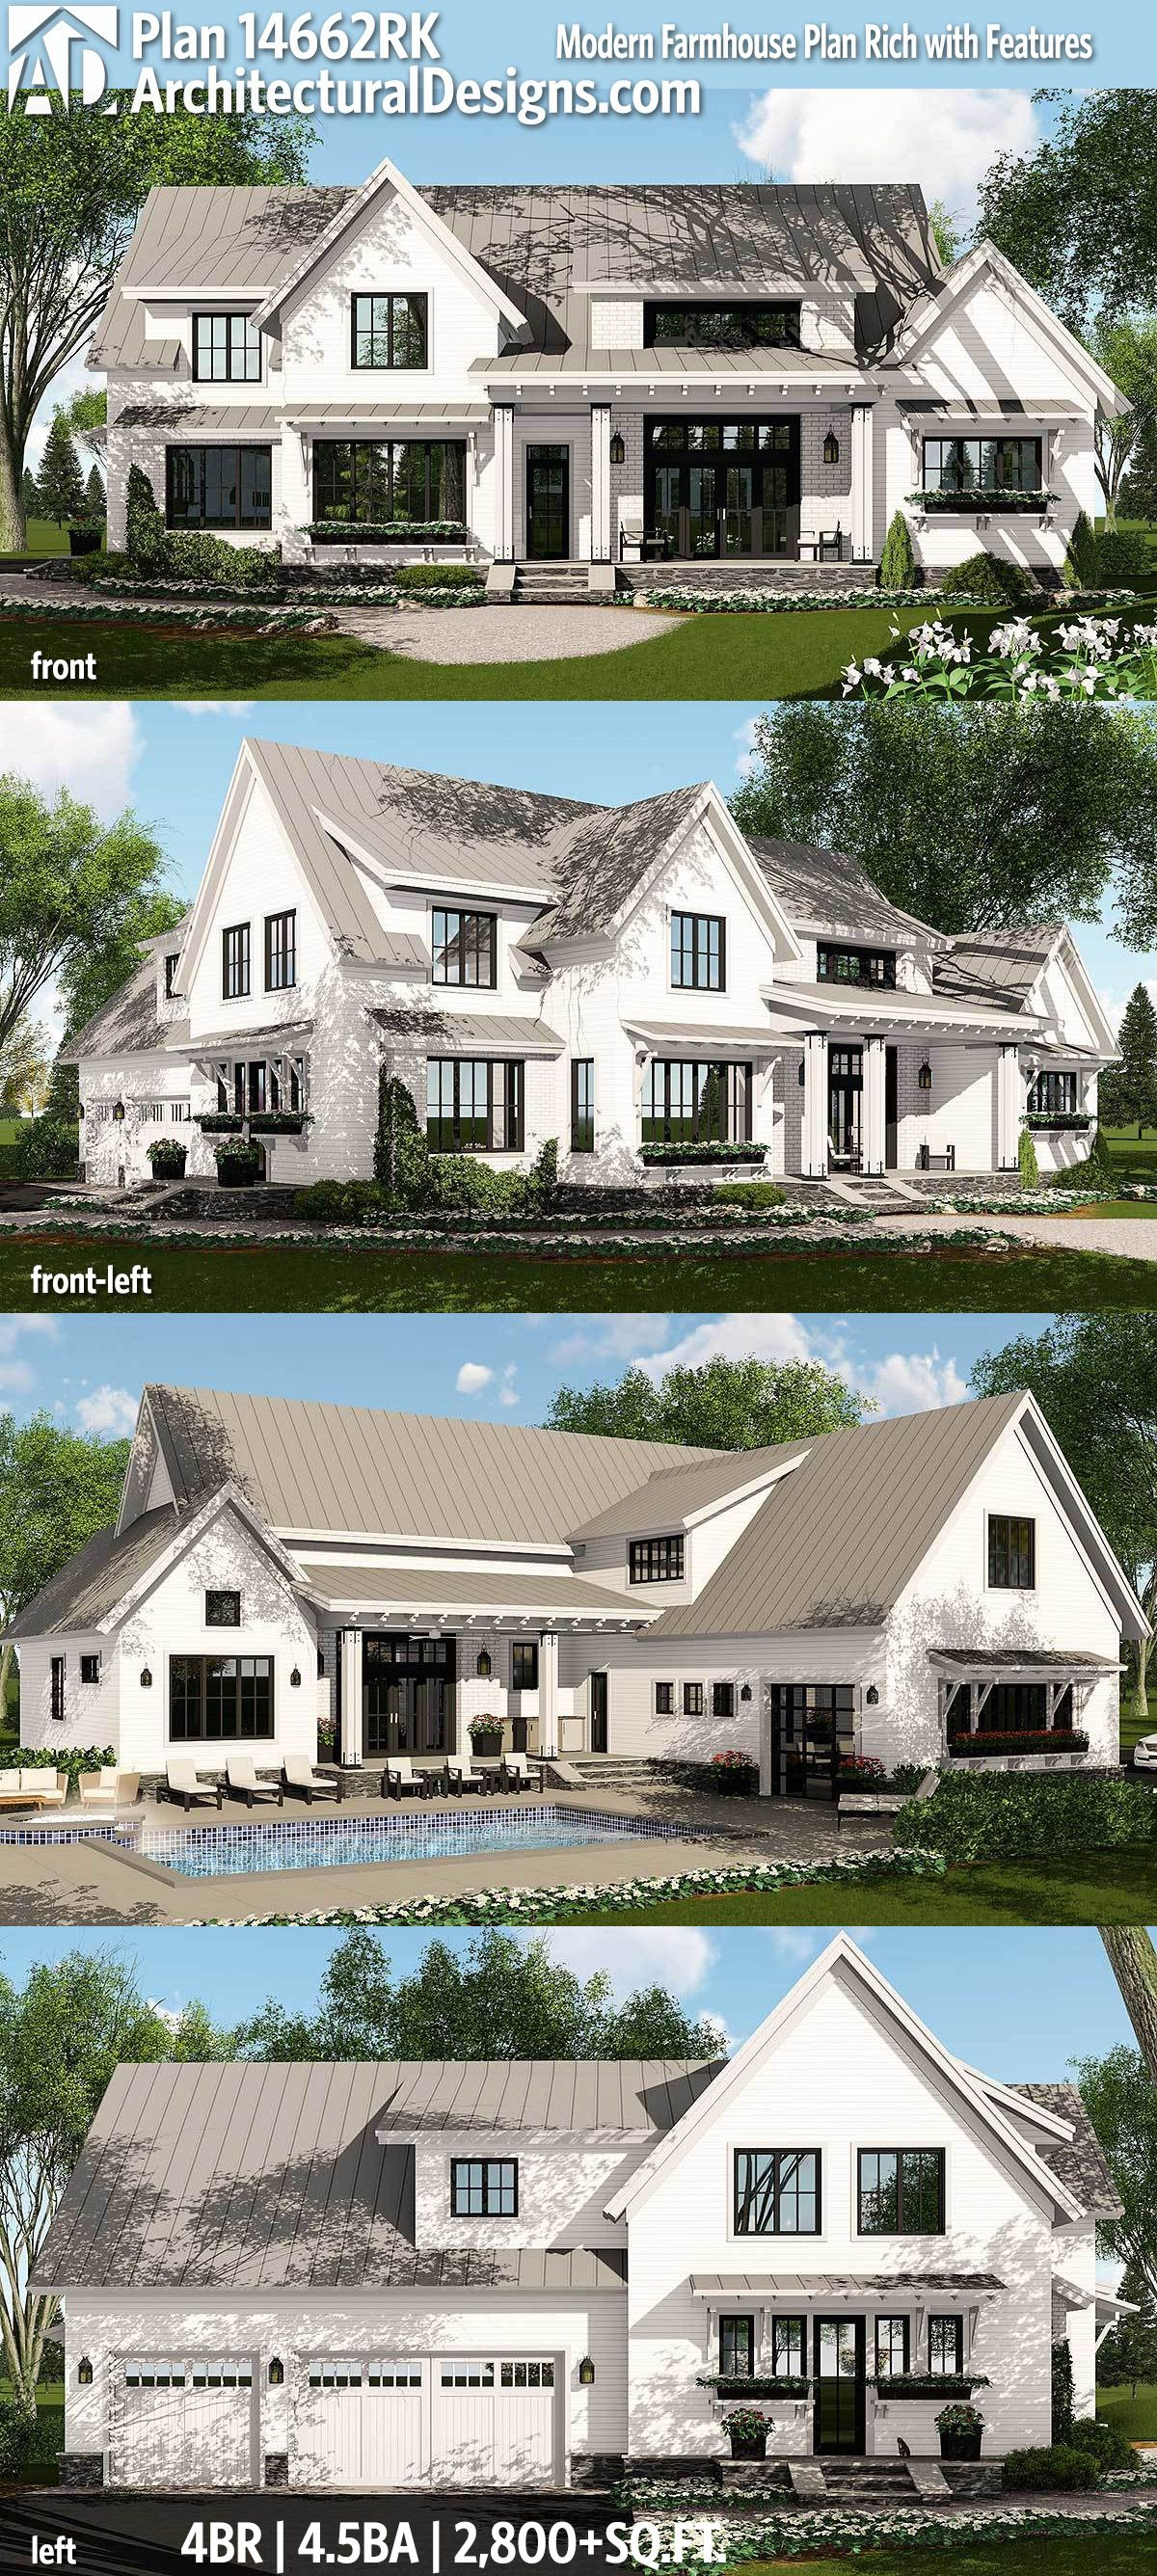 Farmhouse Architecture Features Plan 14662rk Modern Farmhouse Plan Rich With Features